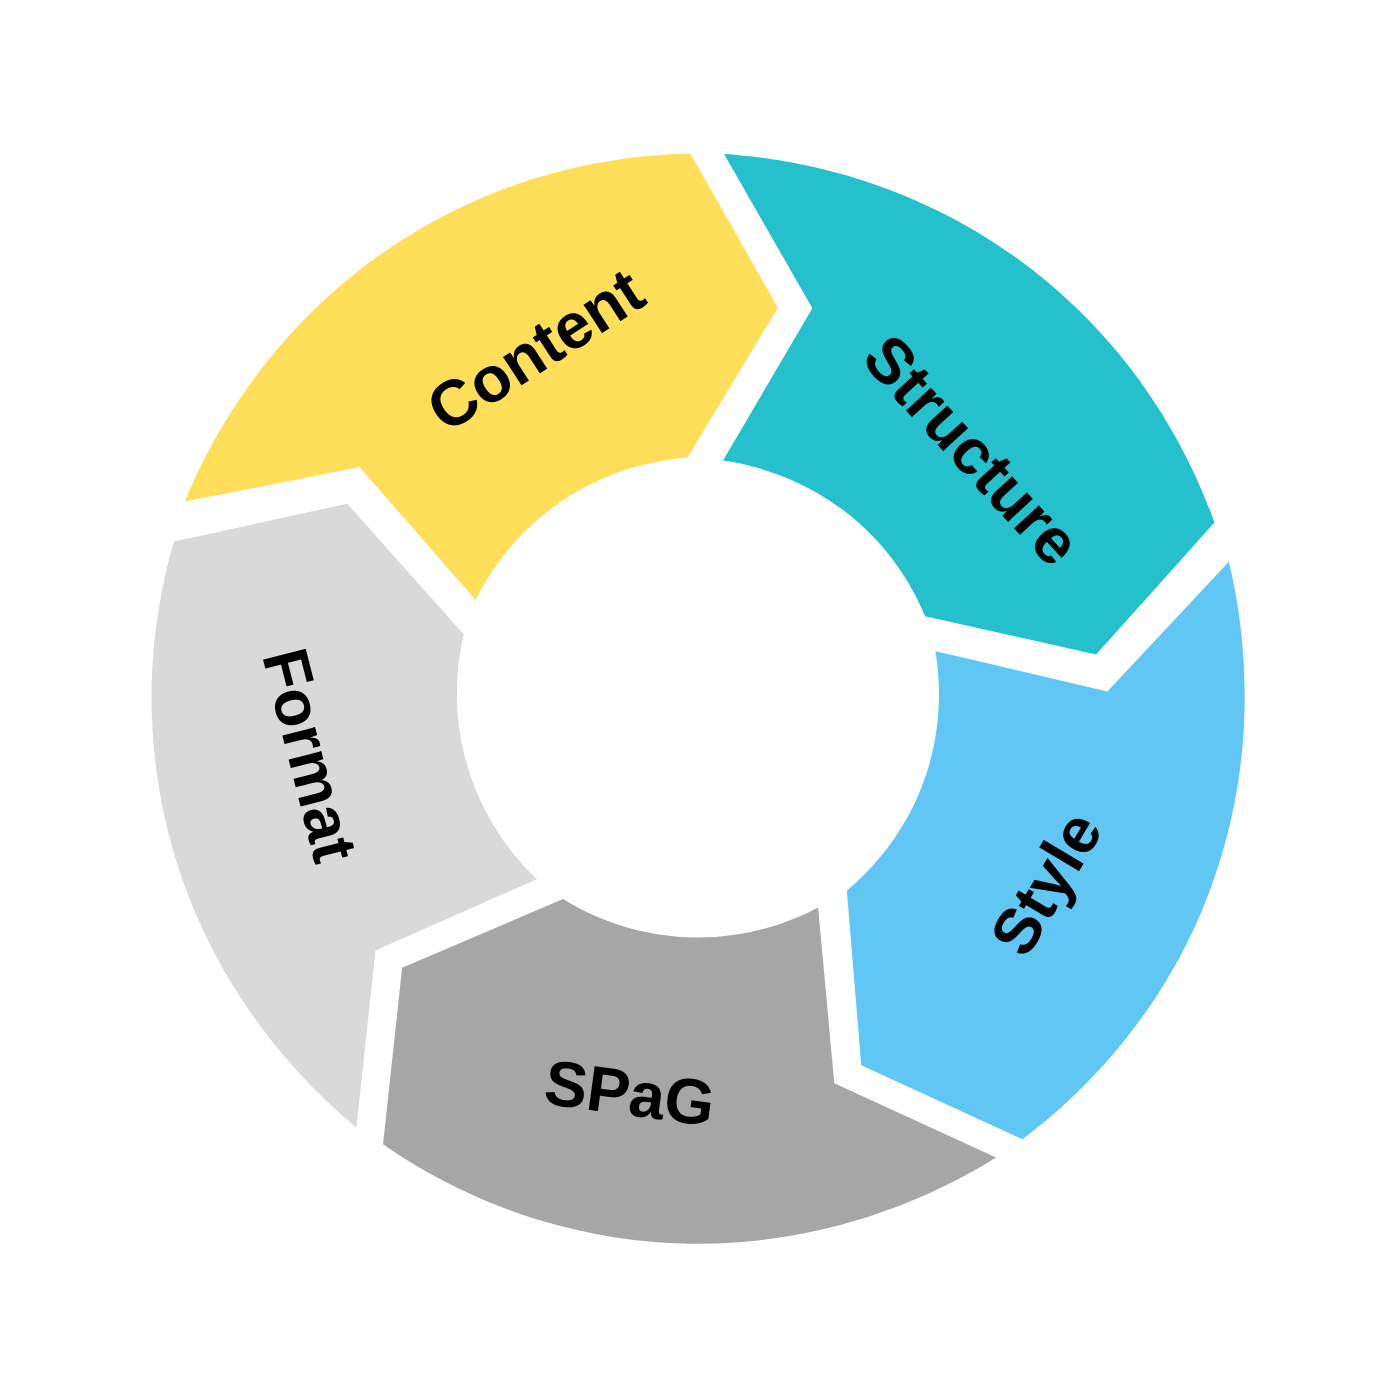 Four areas to check in writing: content, structure, style, SPaG, format.